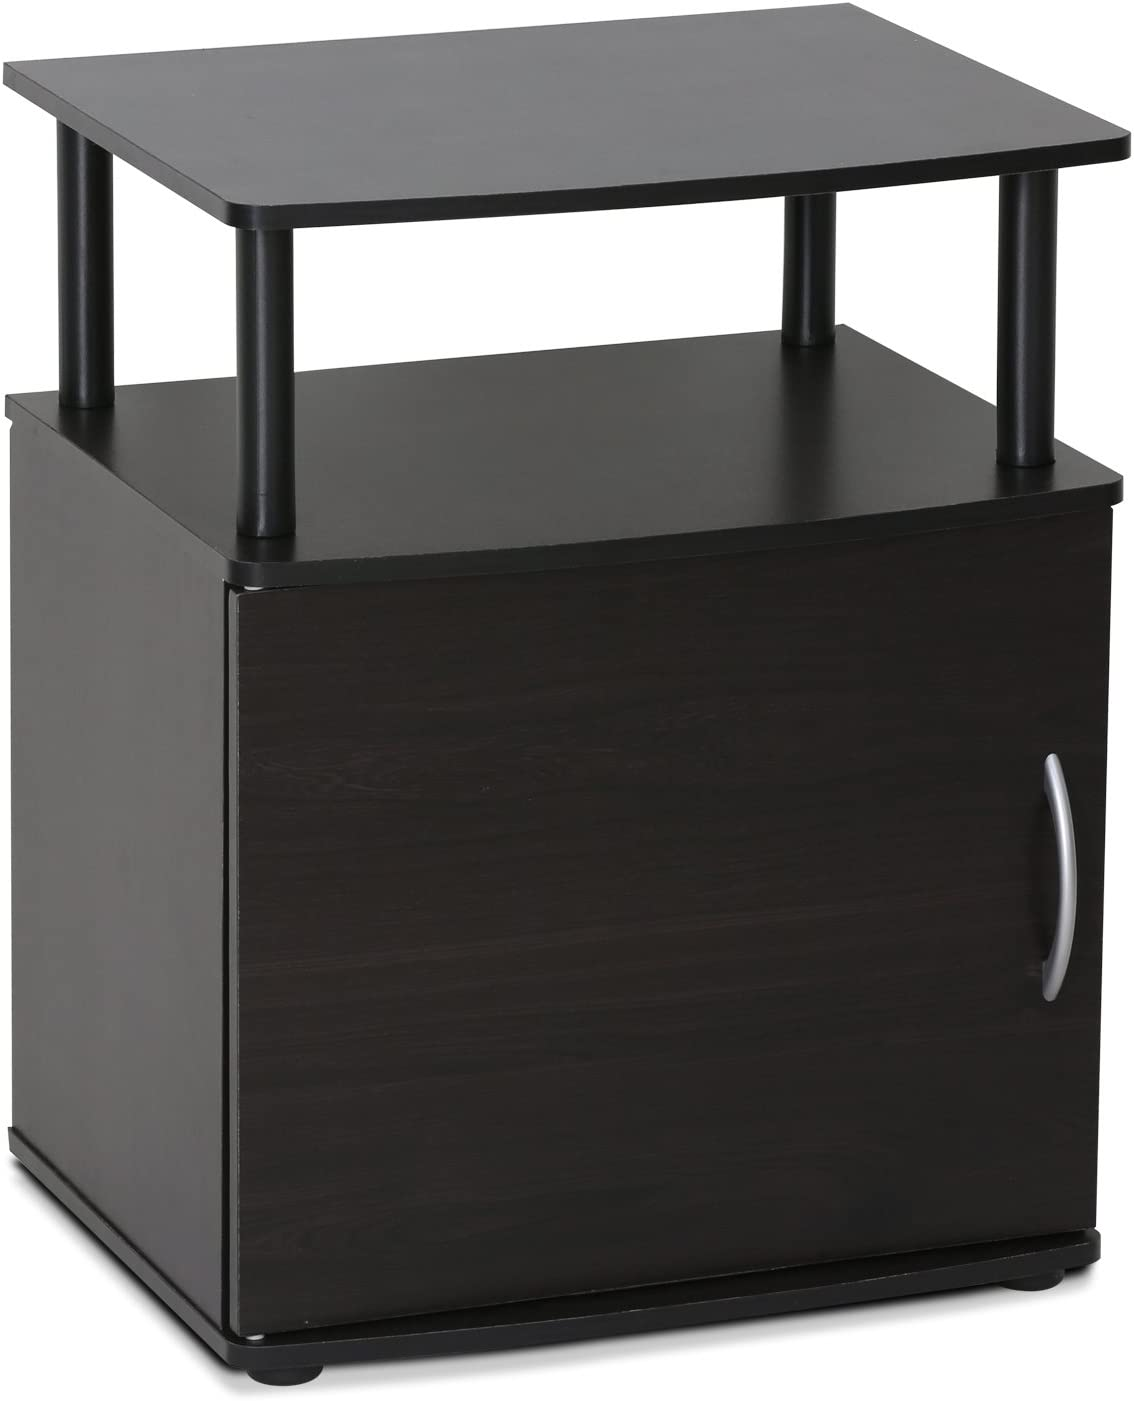 FURINNO Jaya End Table, One, Black Wood